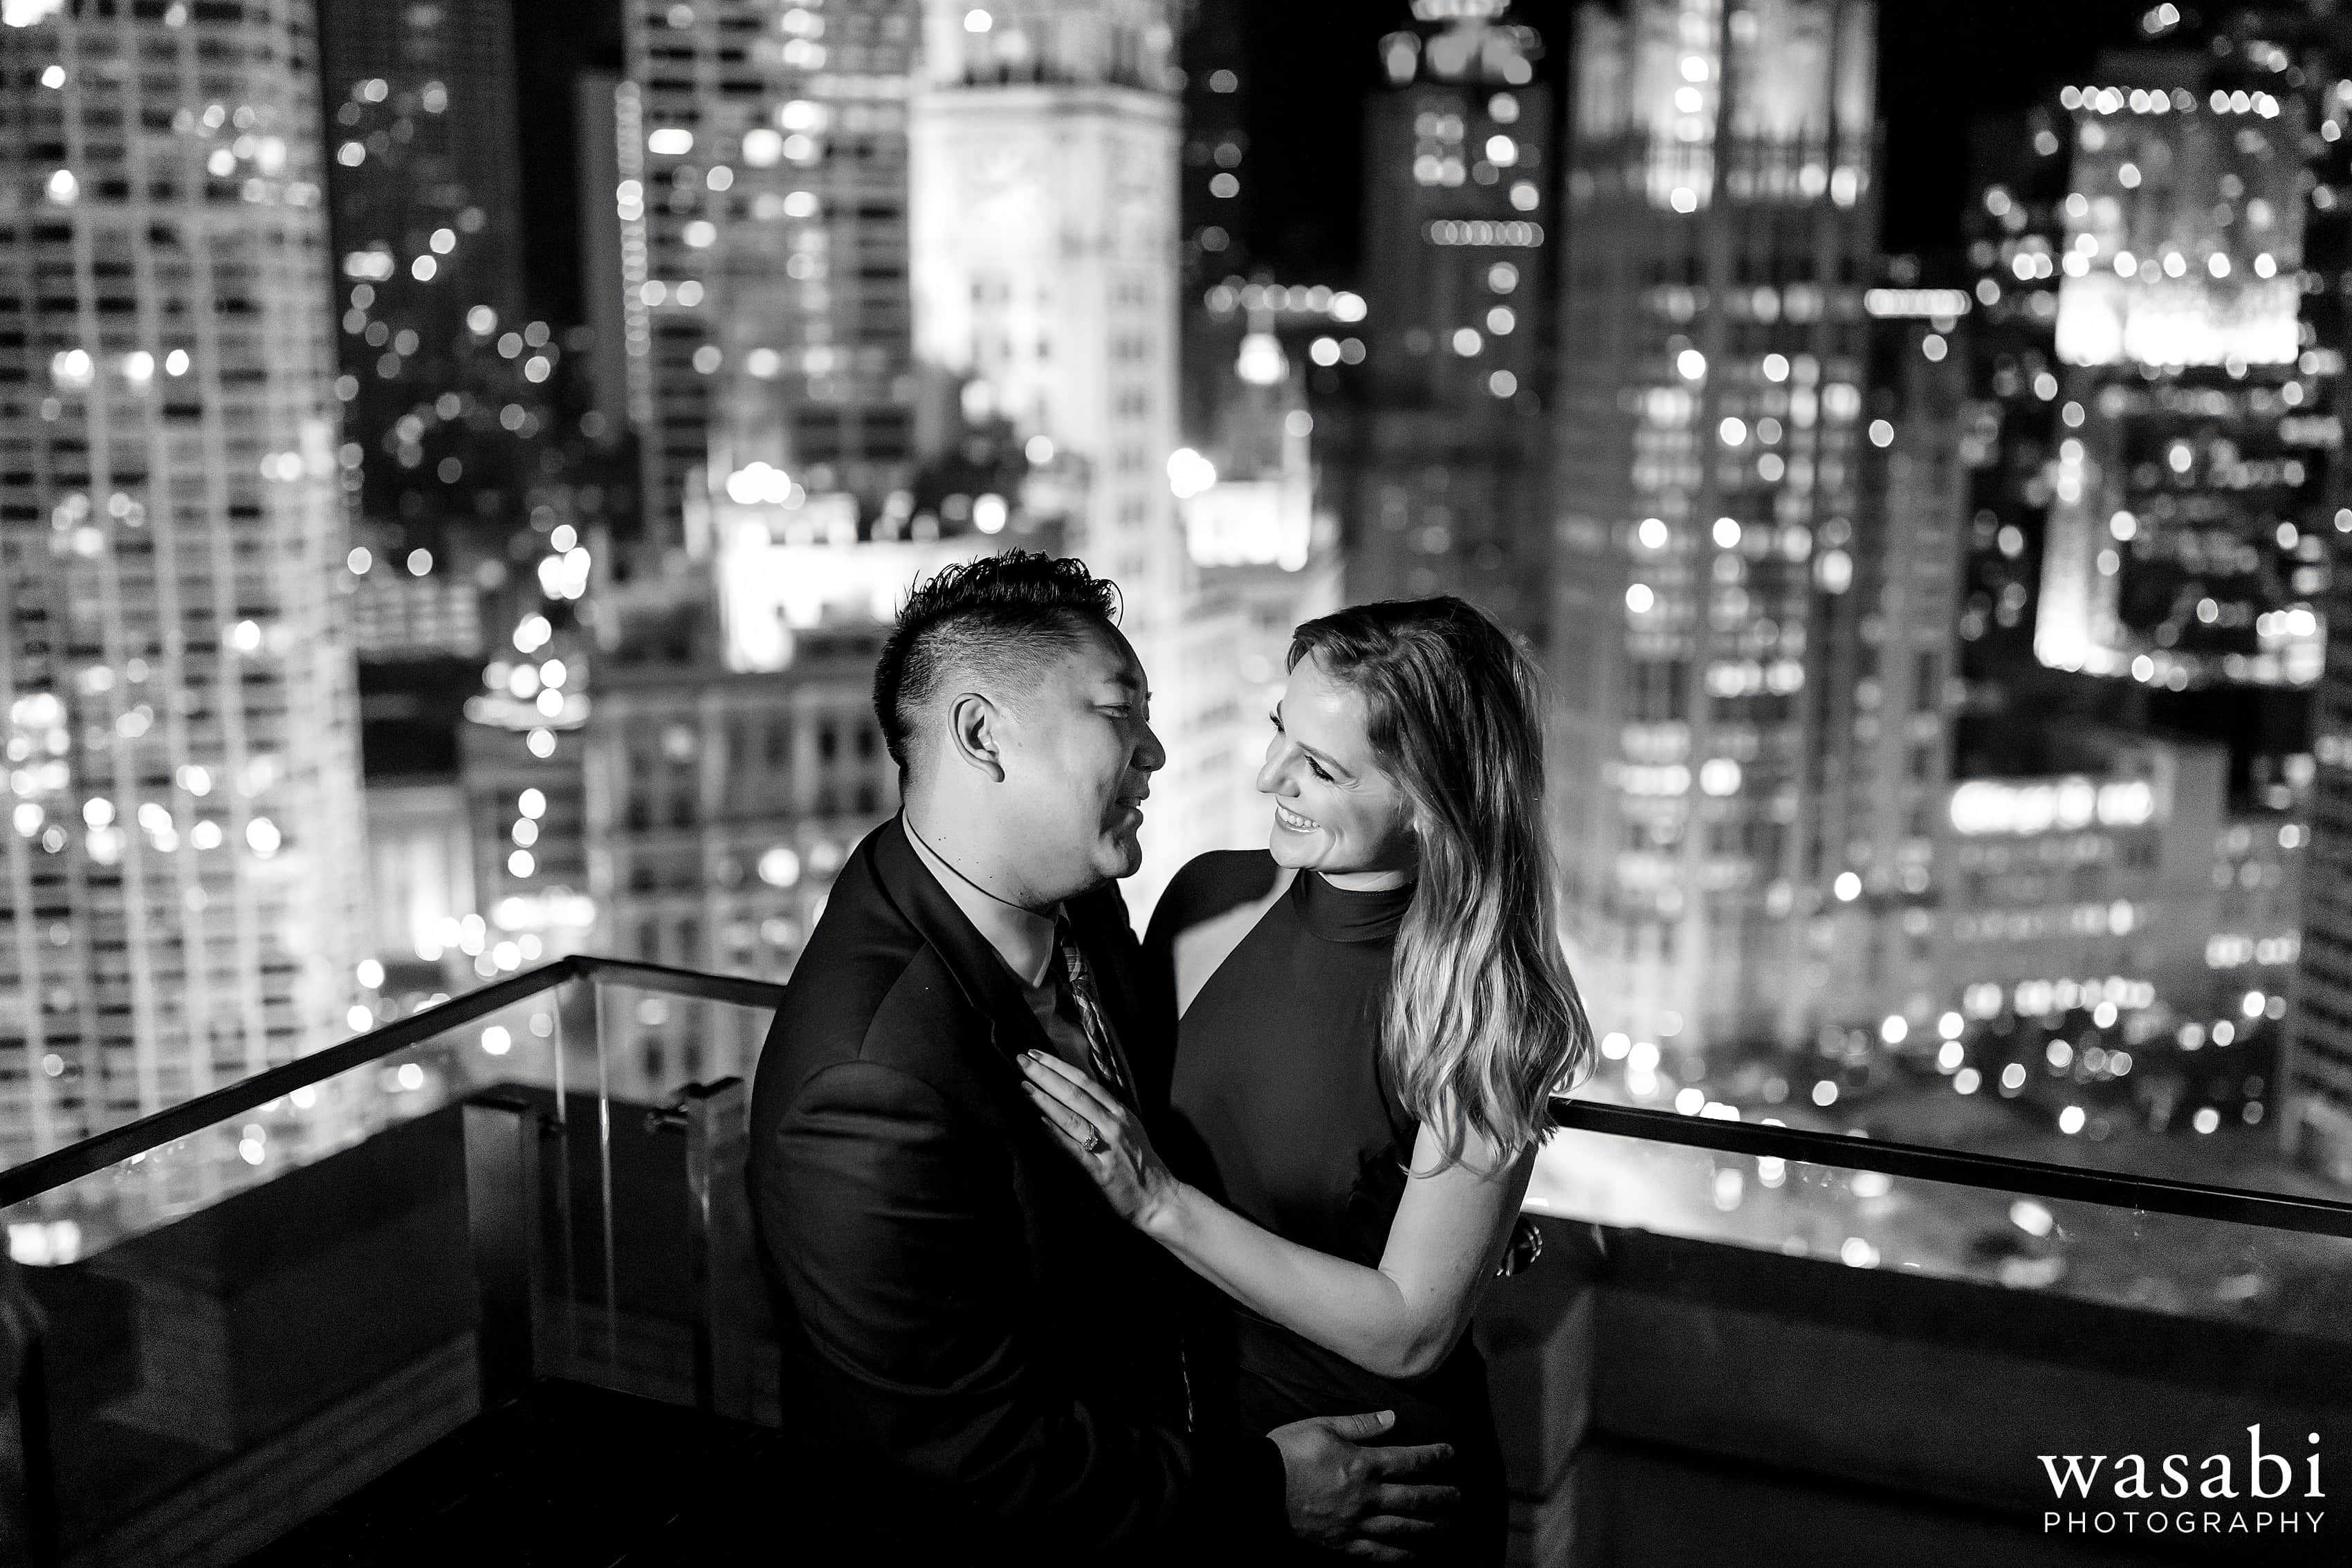 Couple shares drinks during engagement session in downtown Chicago with skyline view from the rooftop bar at London House